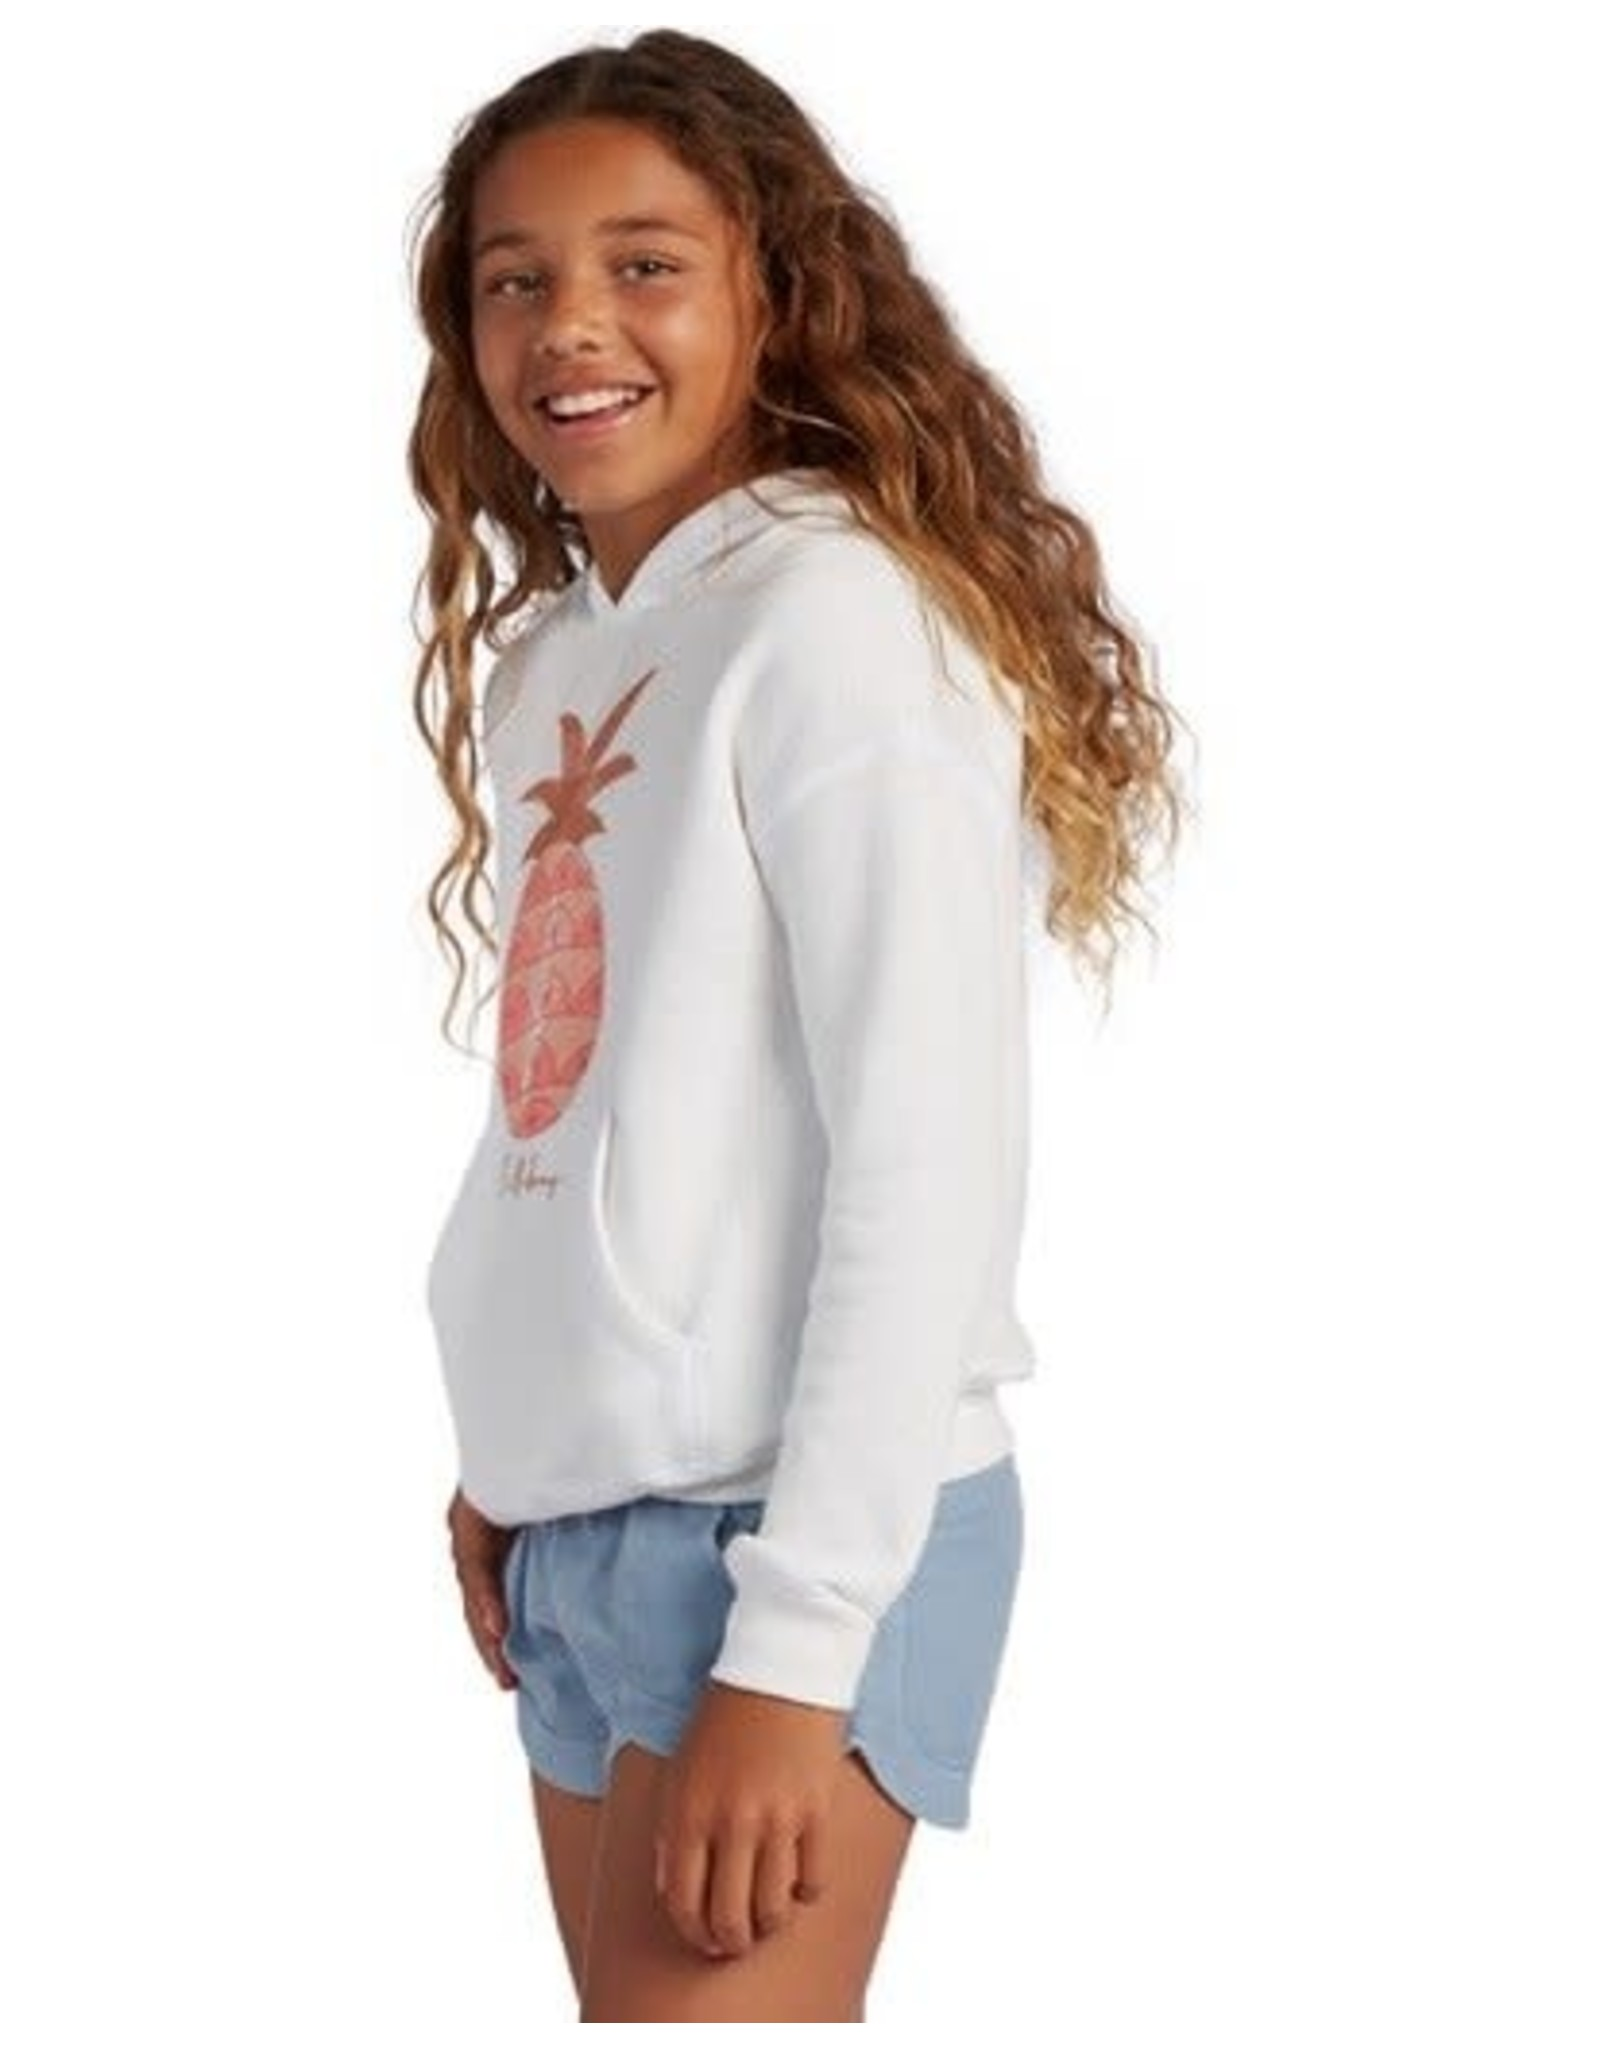 billabong Billabong - Ouaté junior aloha love salt crystal